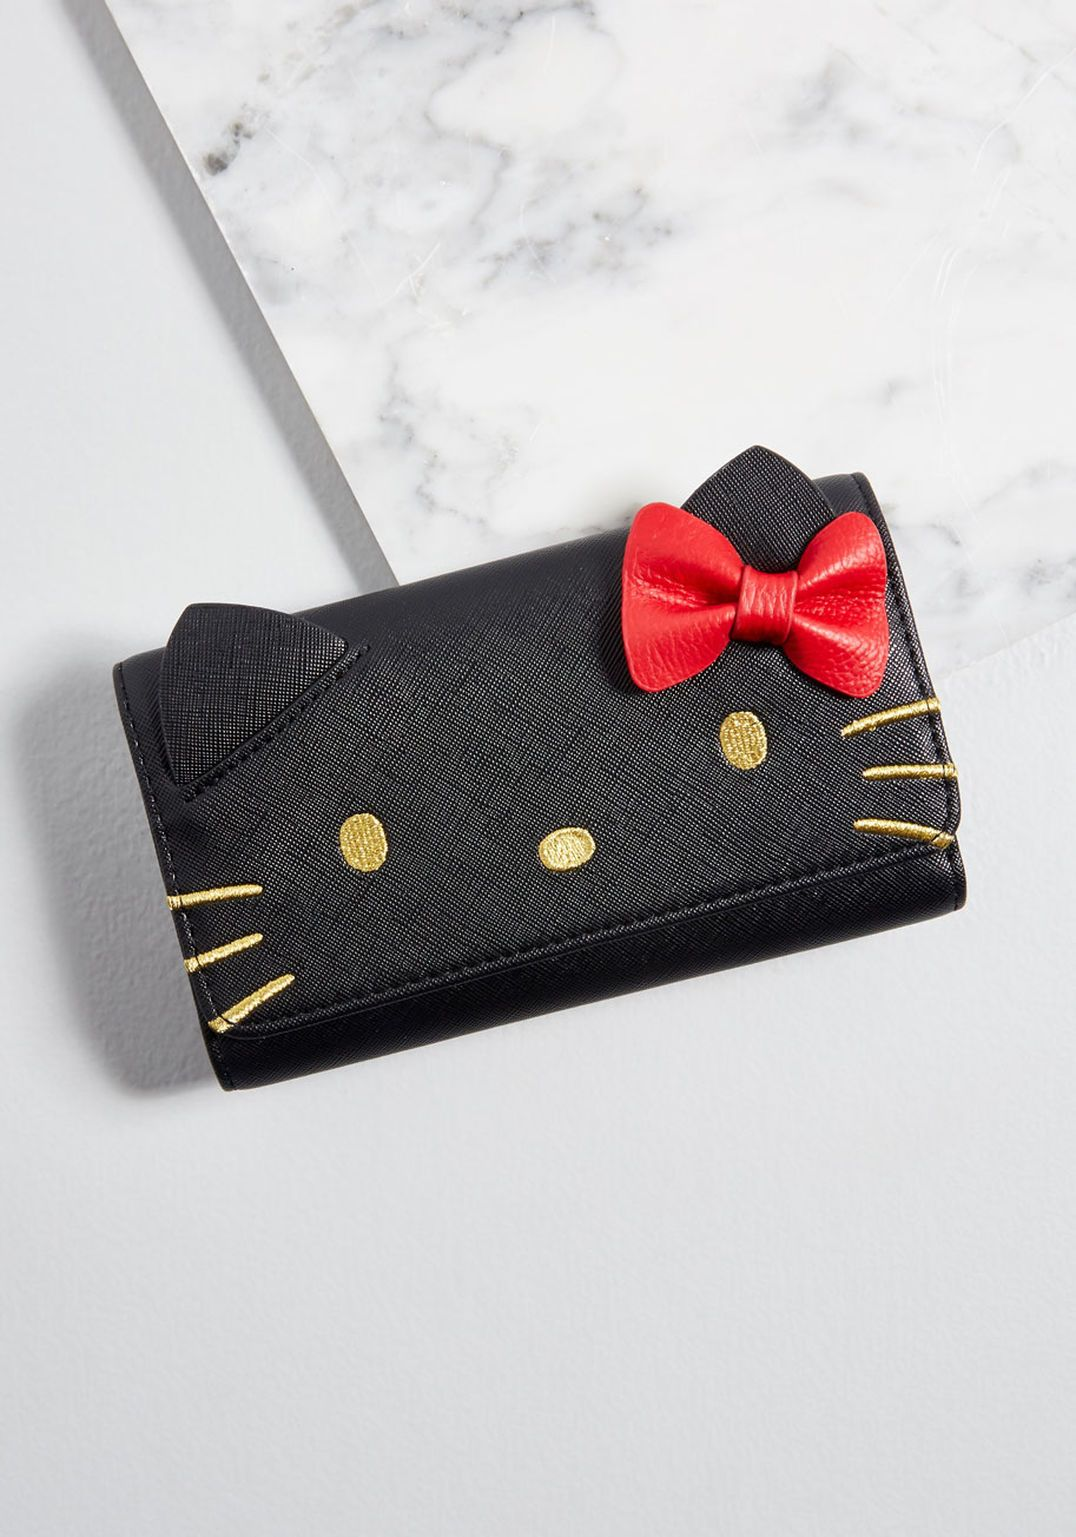 473017fdc5f4b for Hello Kitty Pop Culture Cutie Wallet | bag me up. | Wallet ...